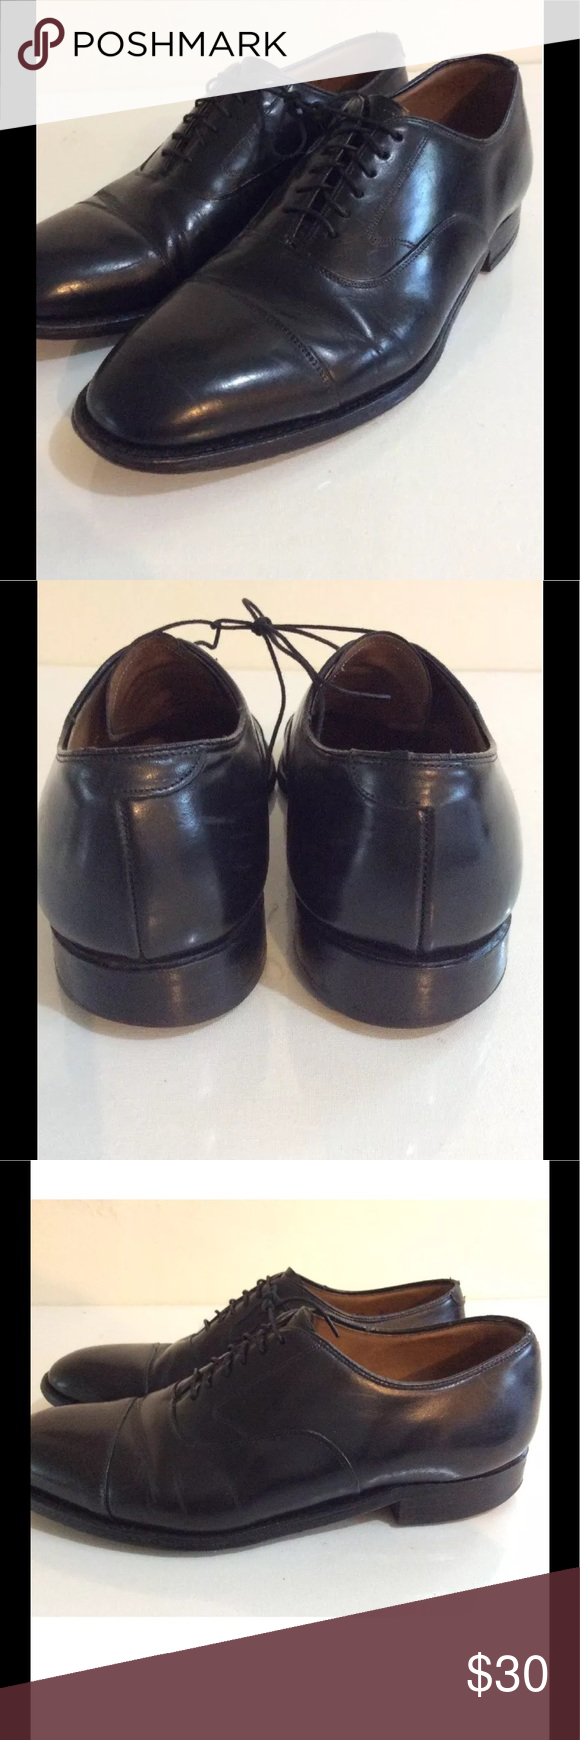 Johnston & Murphy mens loafers black size 10D Good condition. Johnston & Murphy Shoes Loafers & Slip-Ons